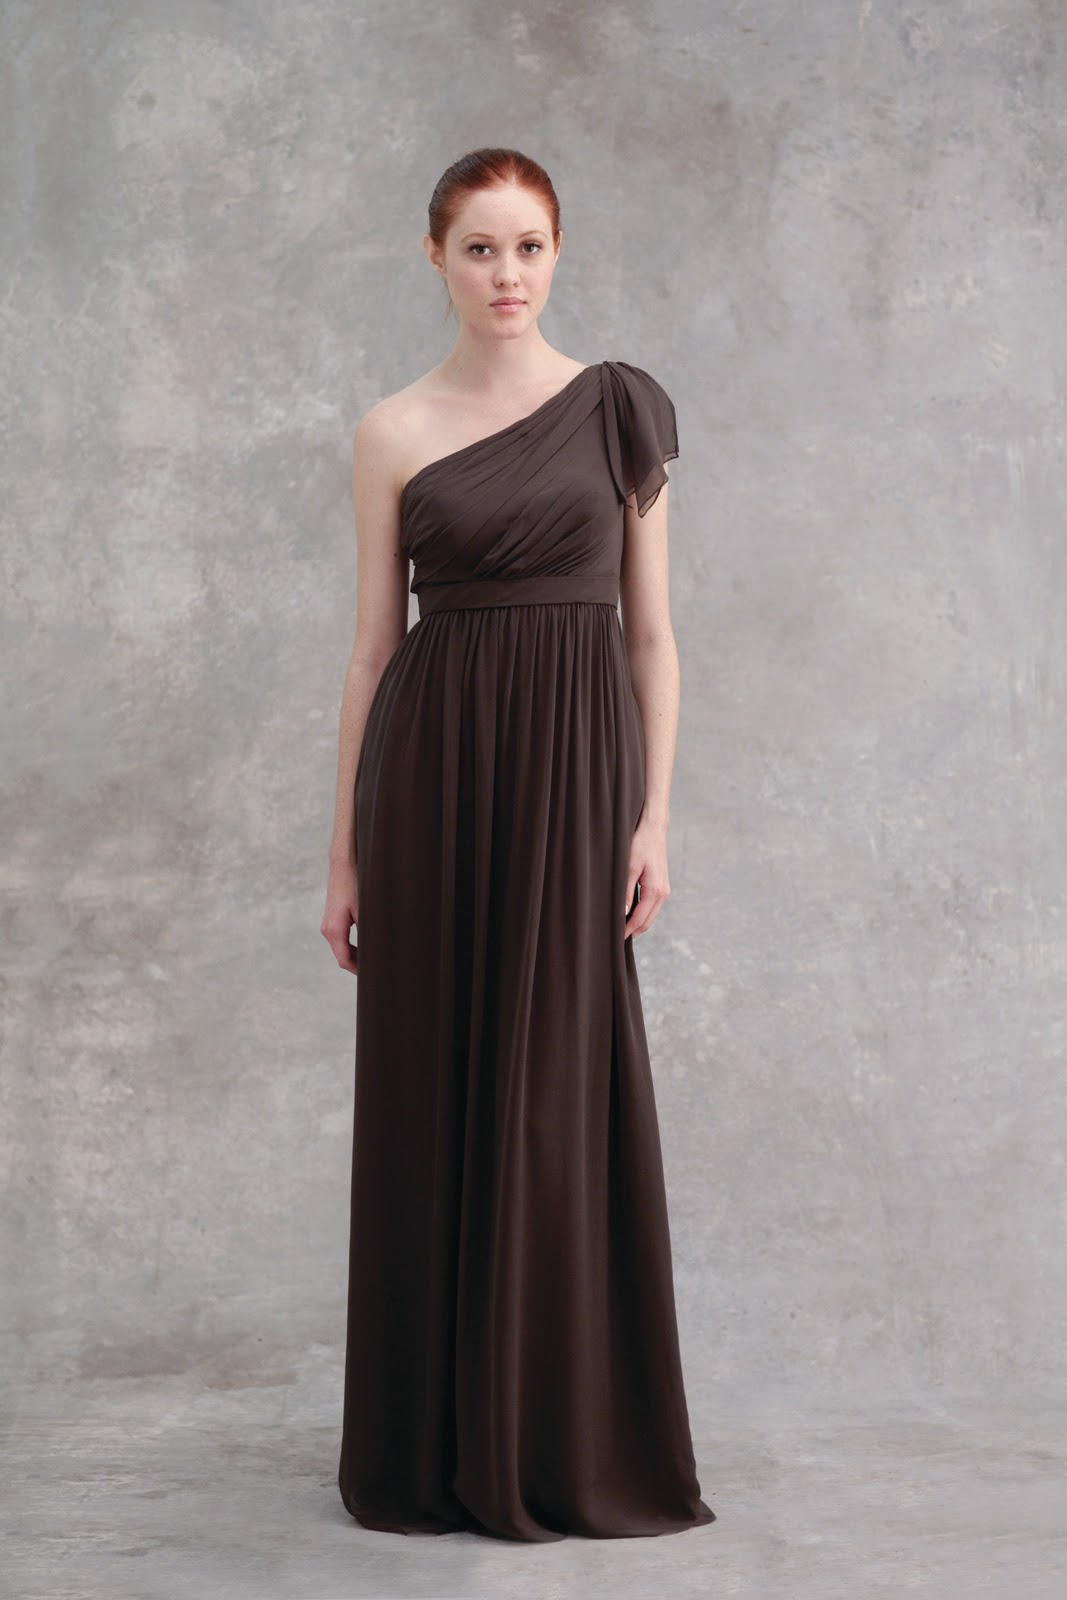 Wedding dresses casual bridesmaid dresses for outdoor wedding for Casual outdoor wedding dresses